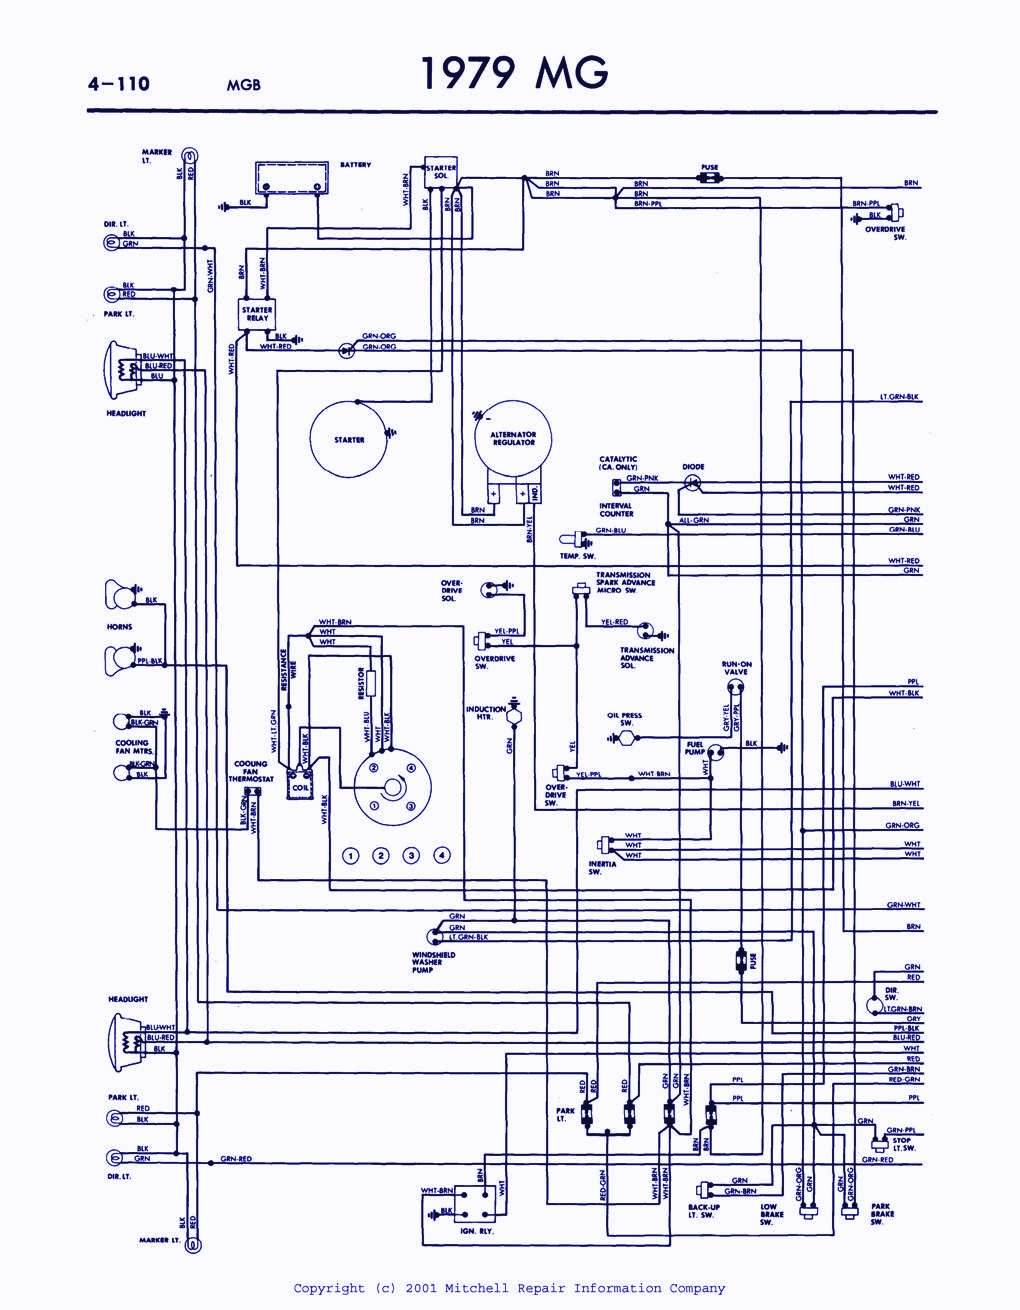 1979 MG MGB Wiring Diagram | Auto Wiring Diagrams